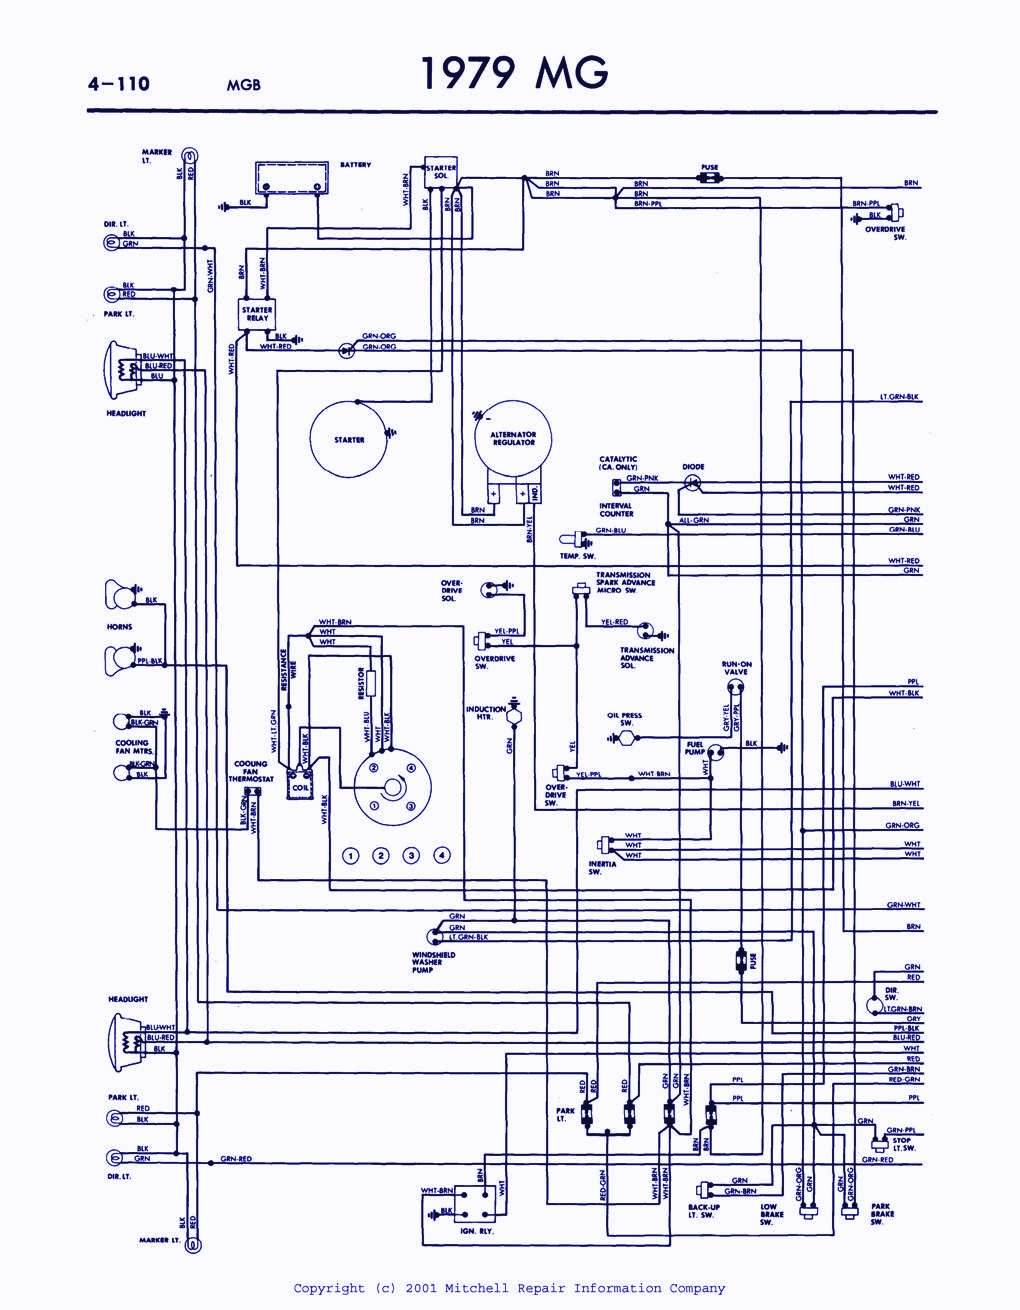 1979 MG MGB Wiring Diagram | Auto Wiring Diagrams